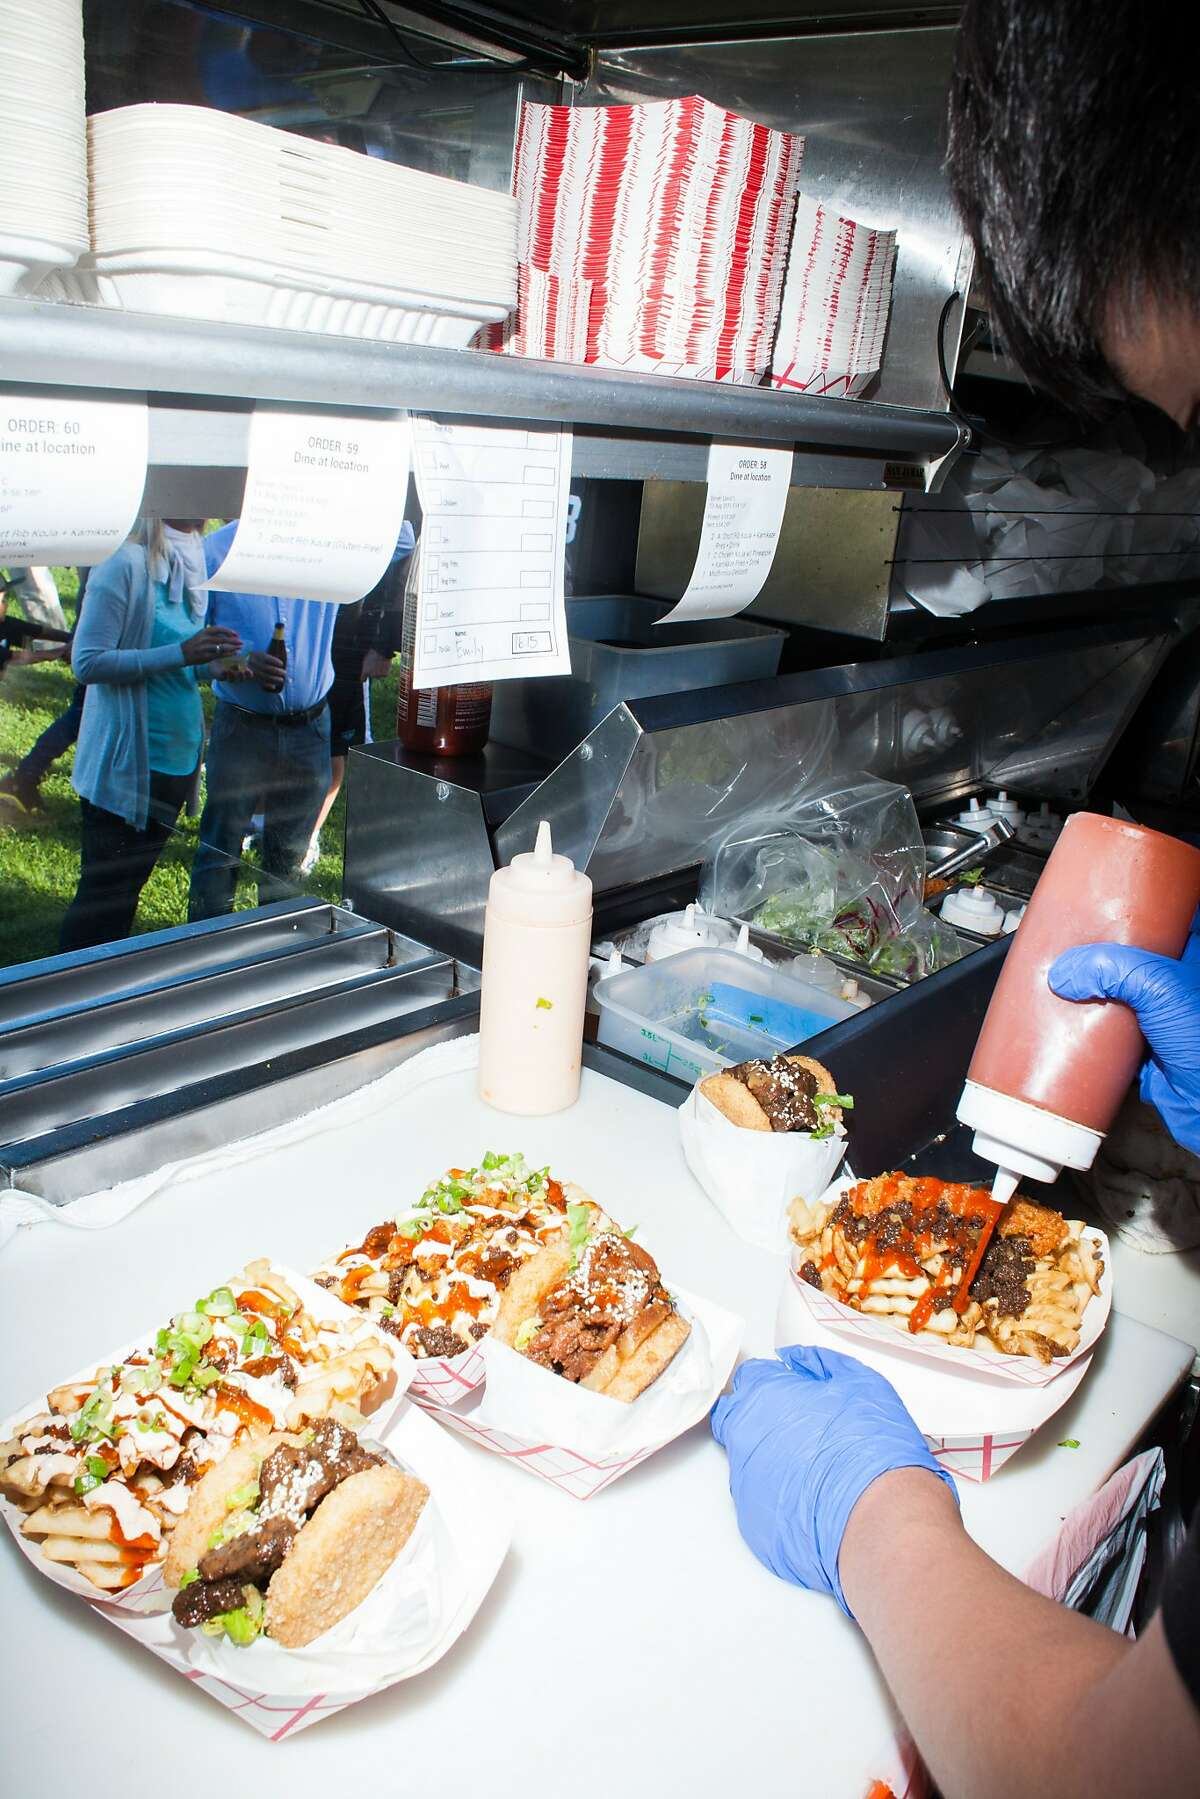 Orders ready to be served in the KoJa Kitchen food truck in San Francisco, Calif., on Thursday, August 13, 2015.